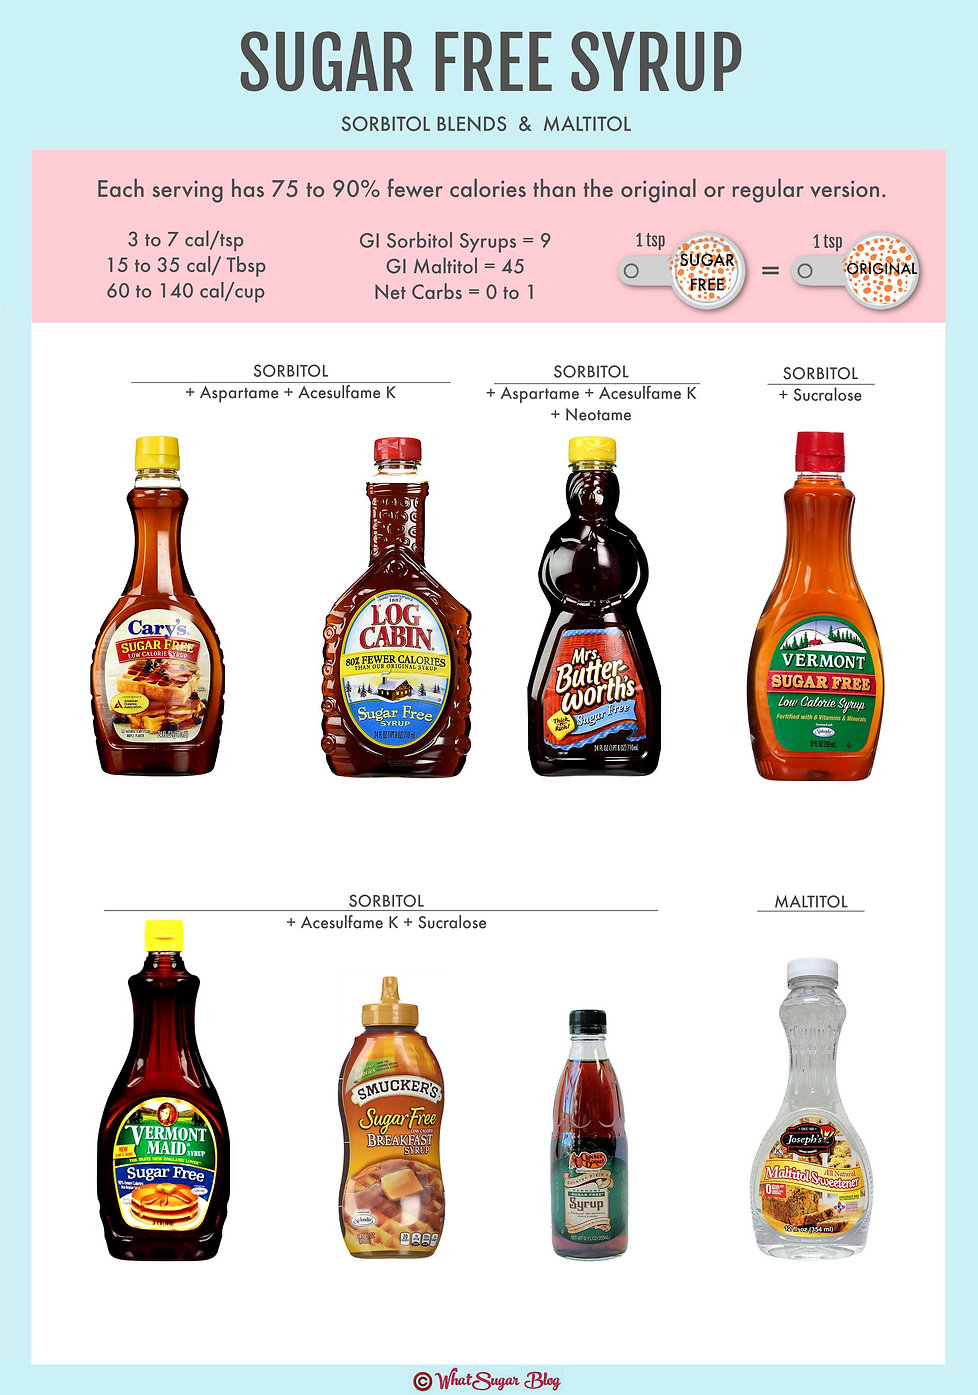 What is the best sugar free pancake syrup?